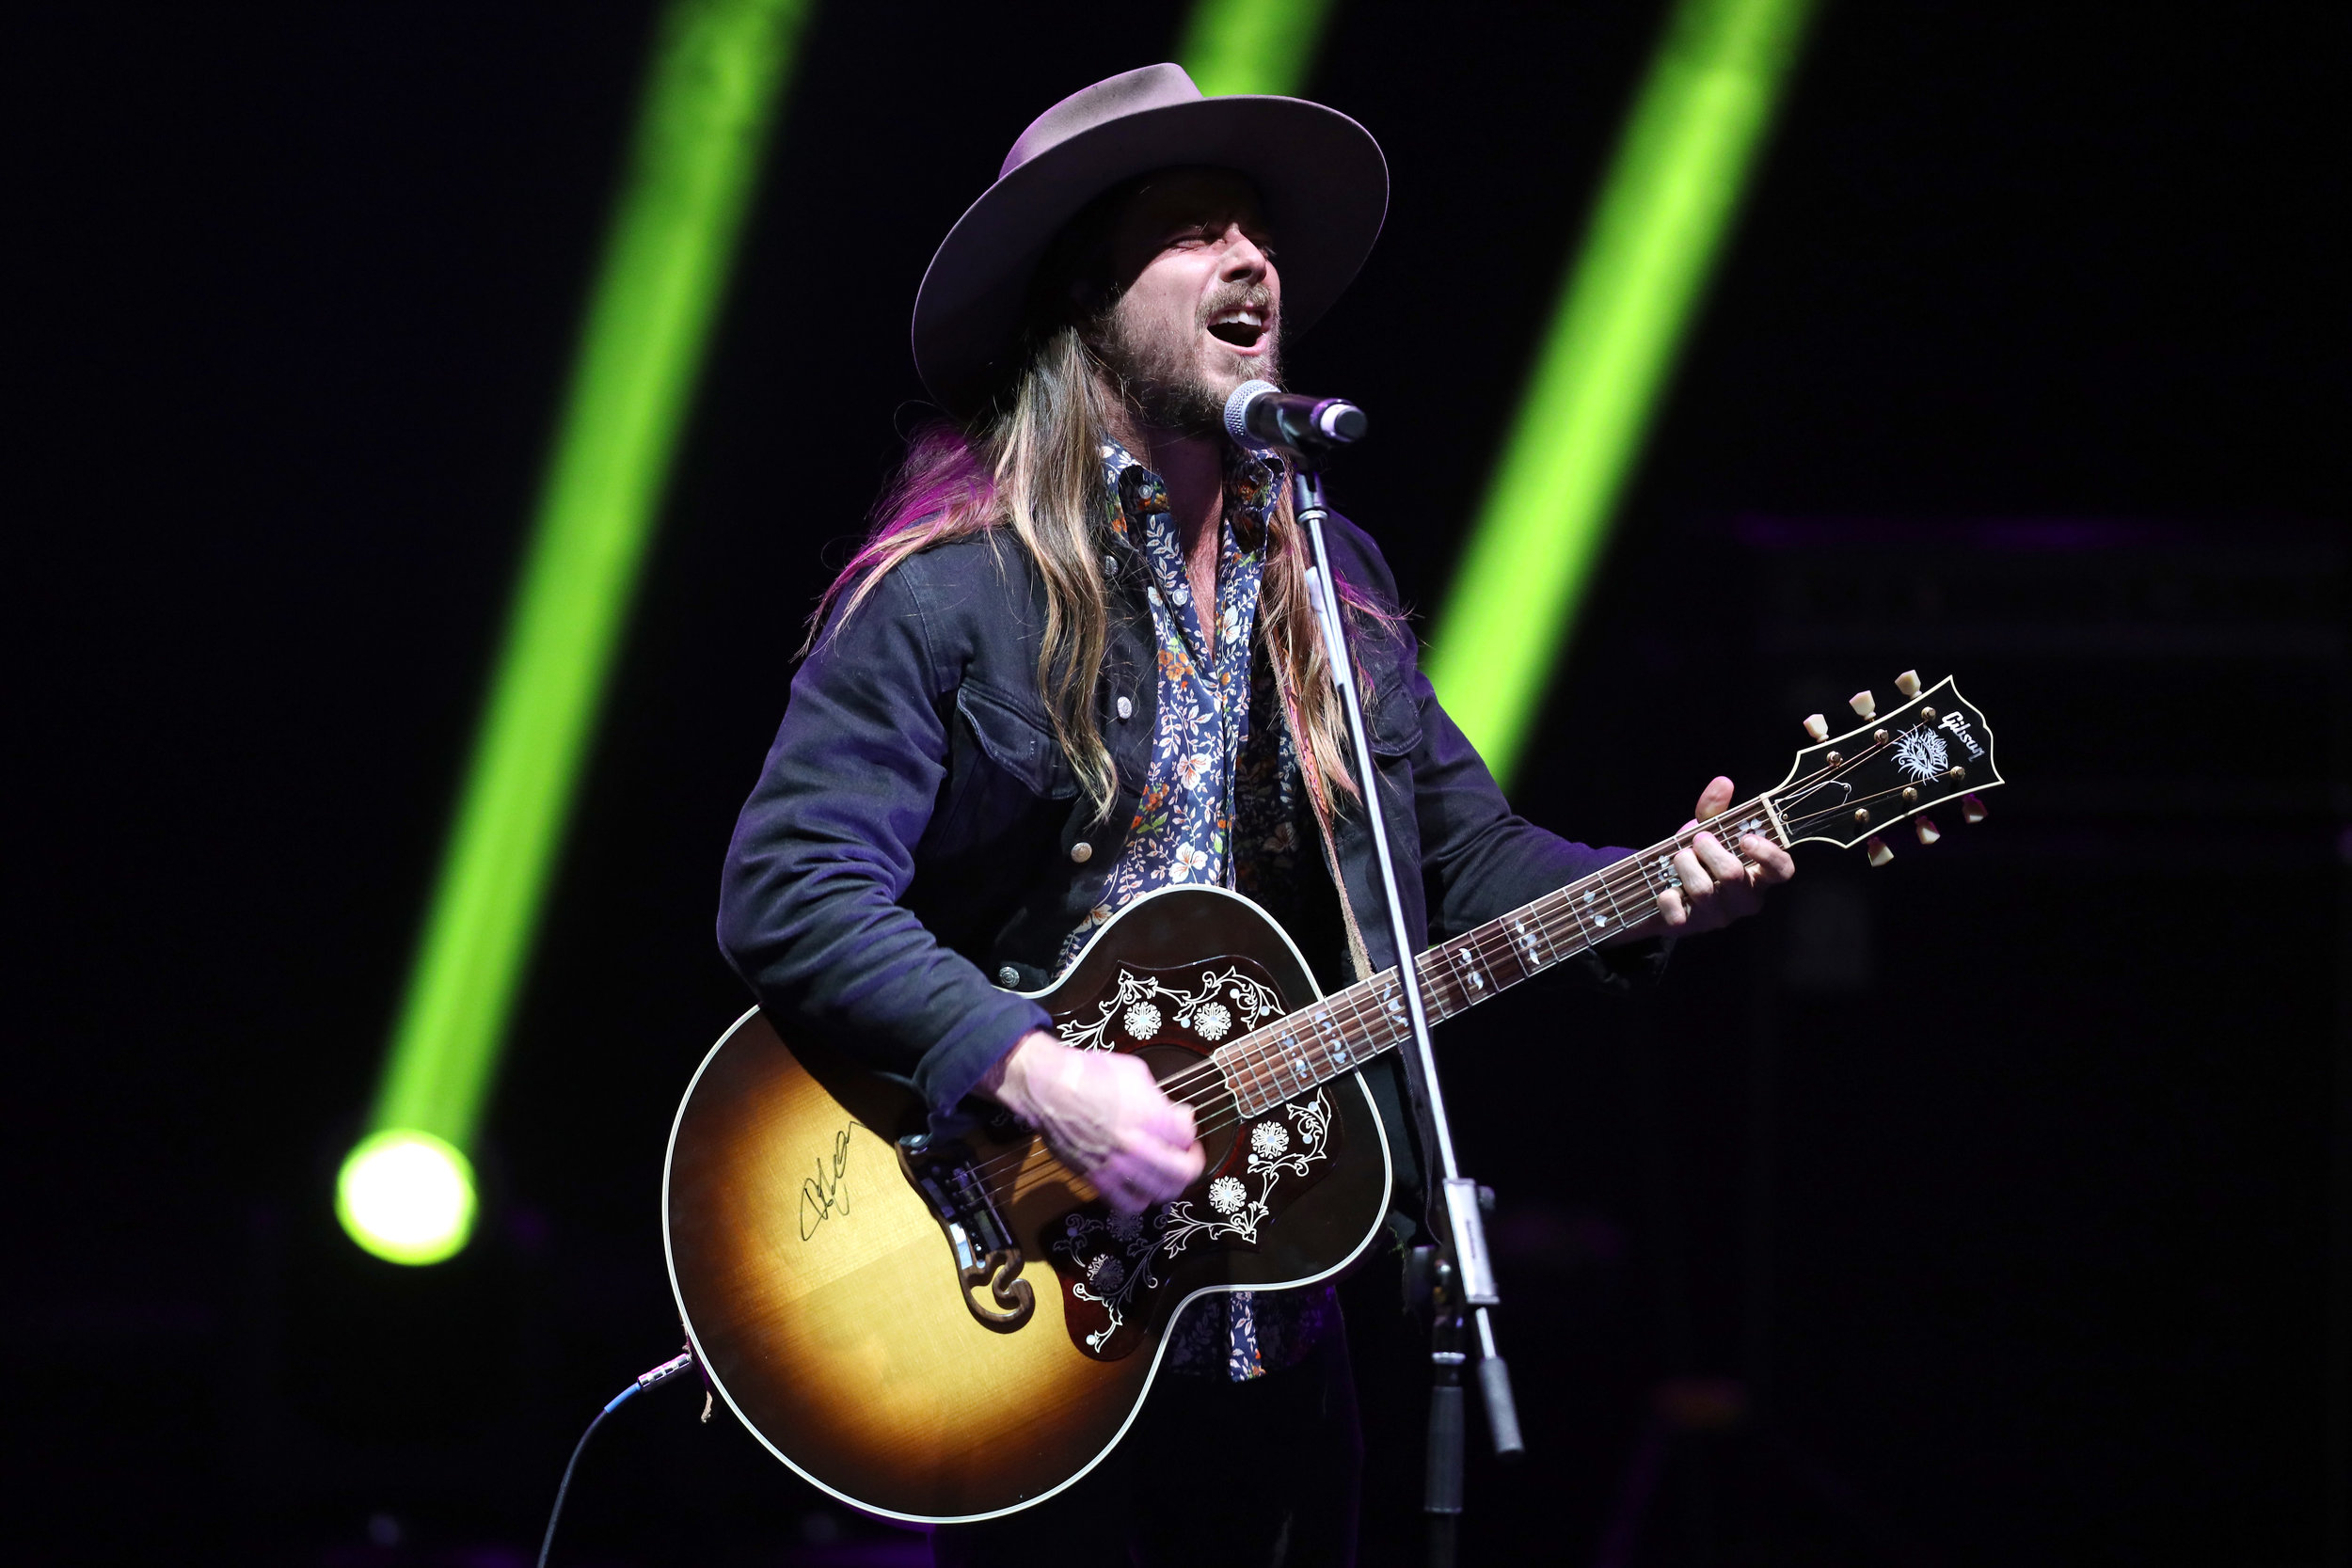 """Lukas Nelson performing """"Shallow"""" at the 9th Annual Guild of Music Supervisors Awards 